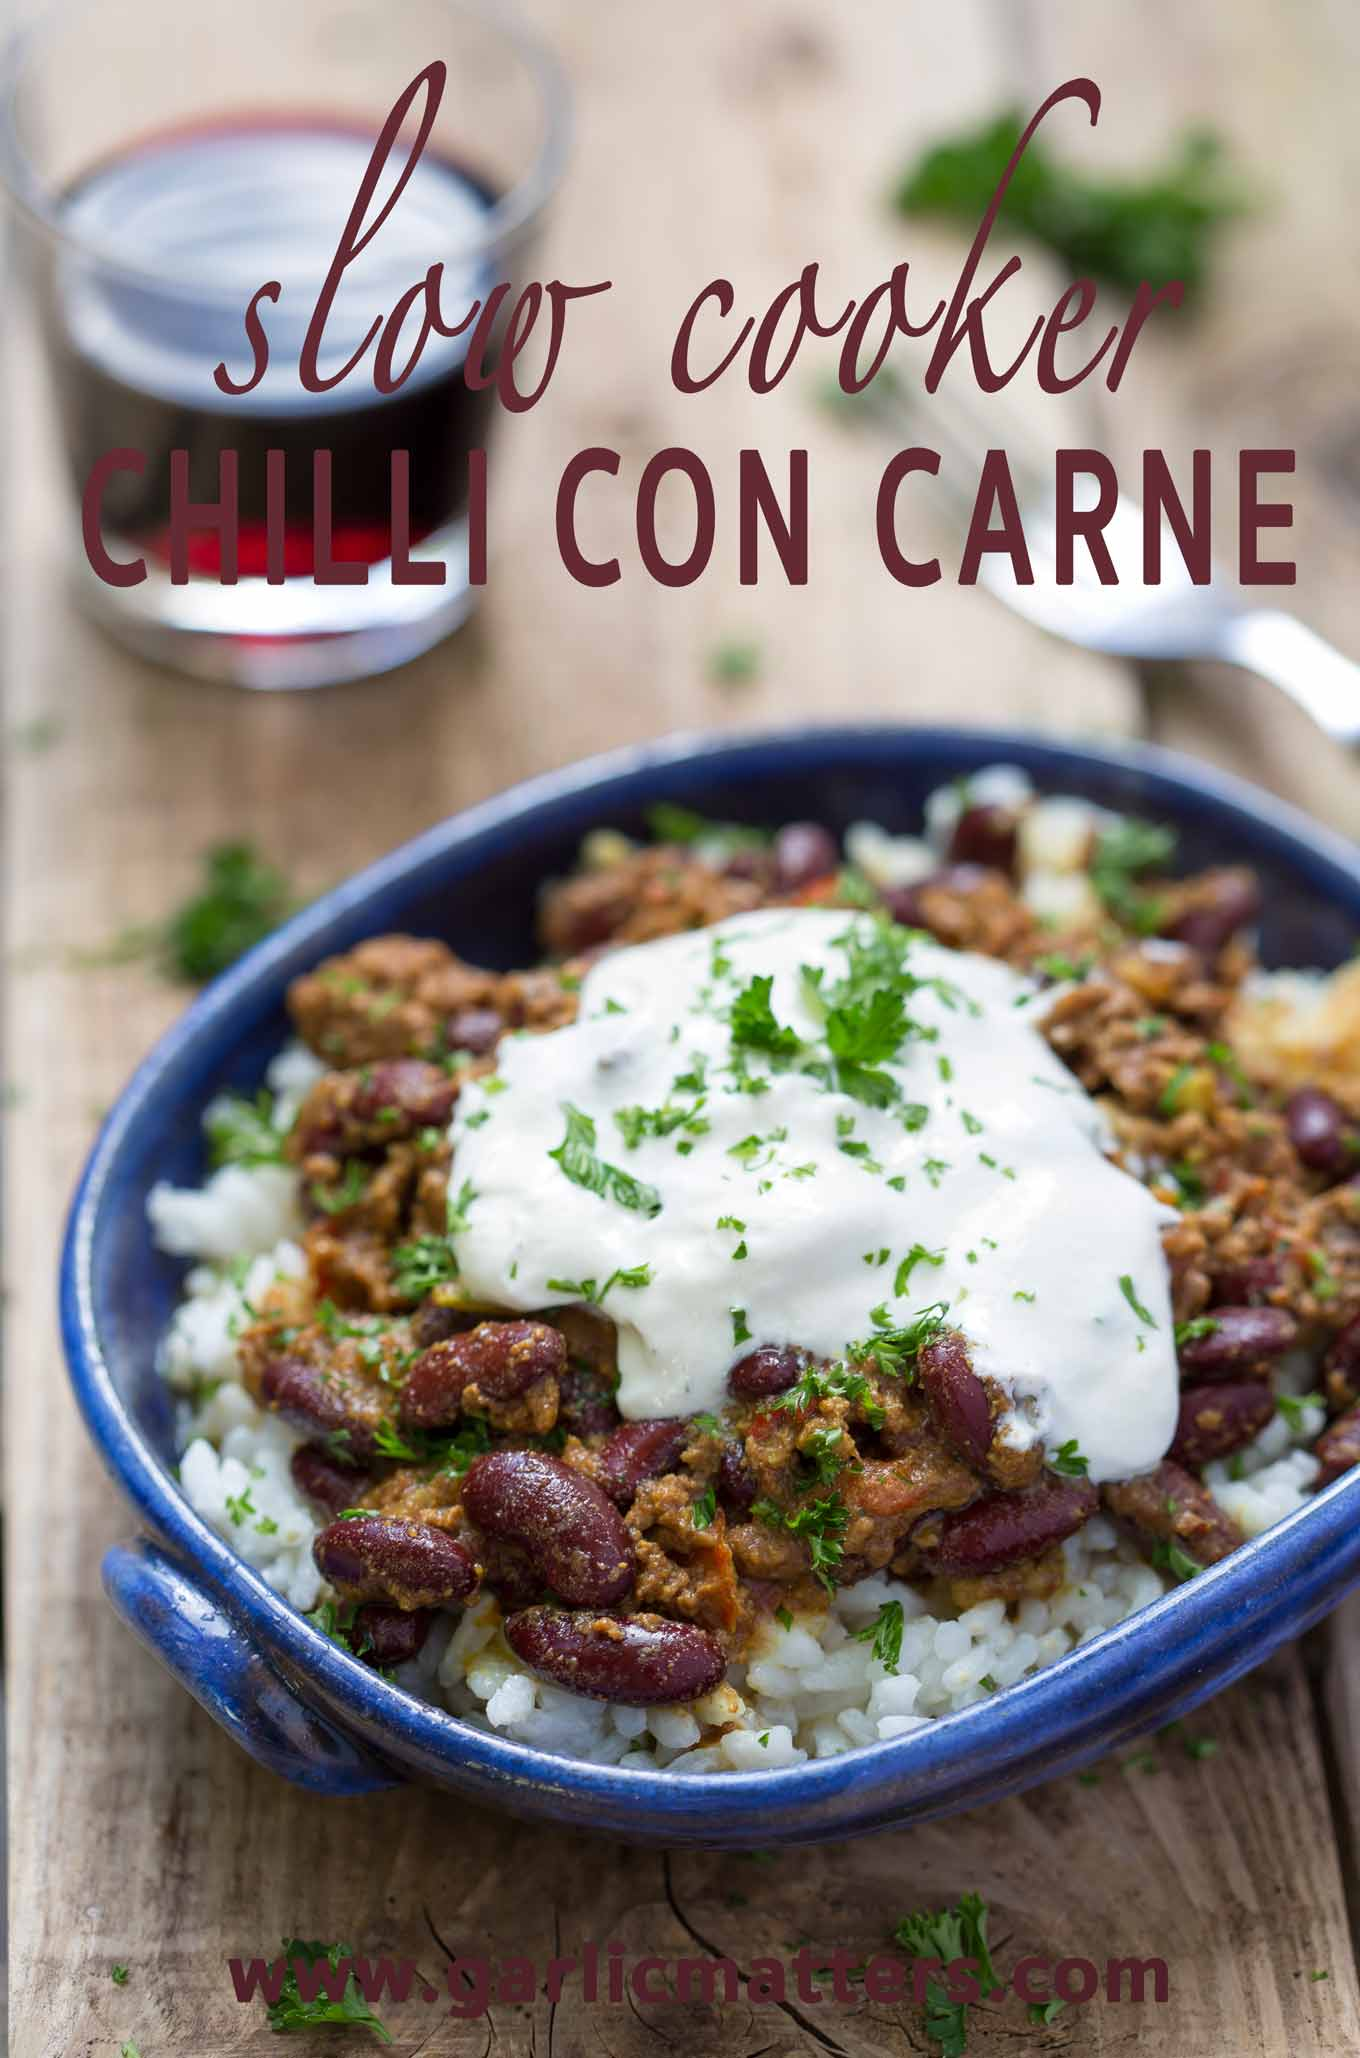 Slow Cooker Chilli Con Carne is a delicious winter-warmer recipe. Place all ingredients in the slow cooker and enjoy 4h later. So simple!